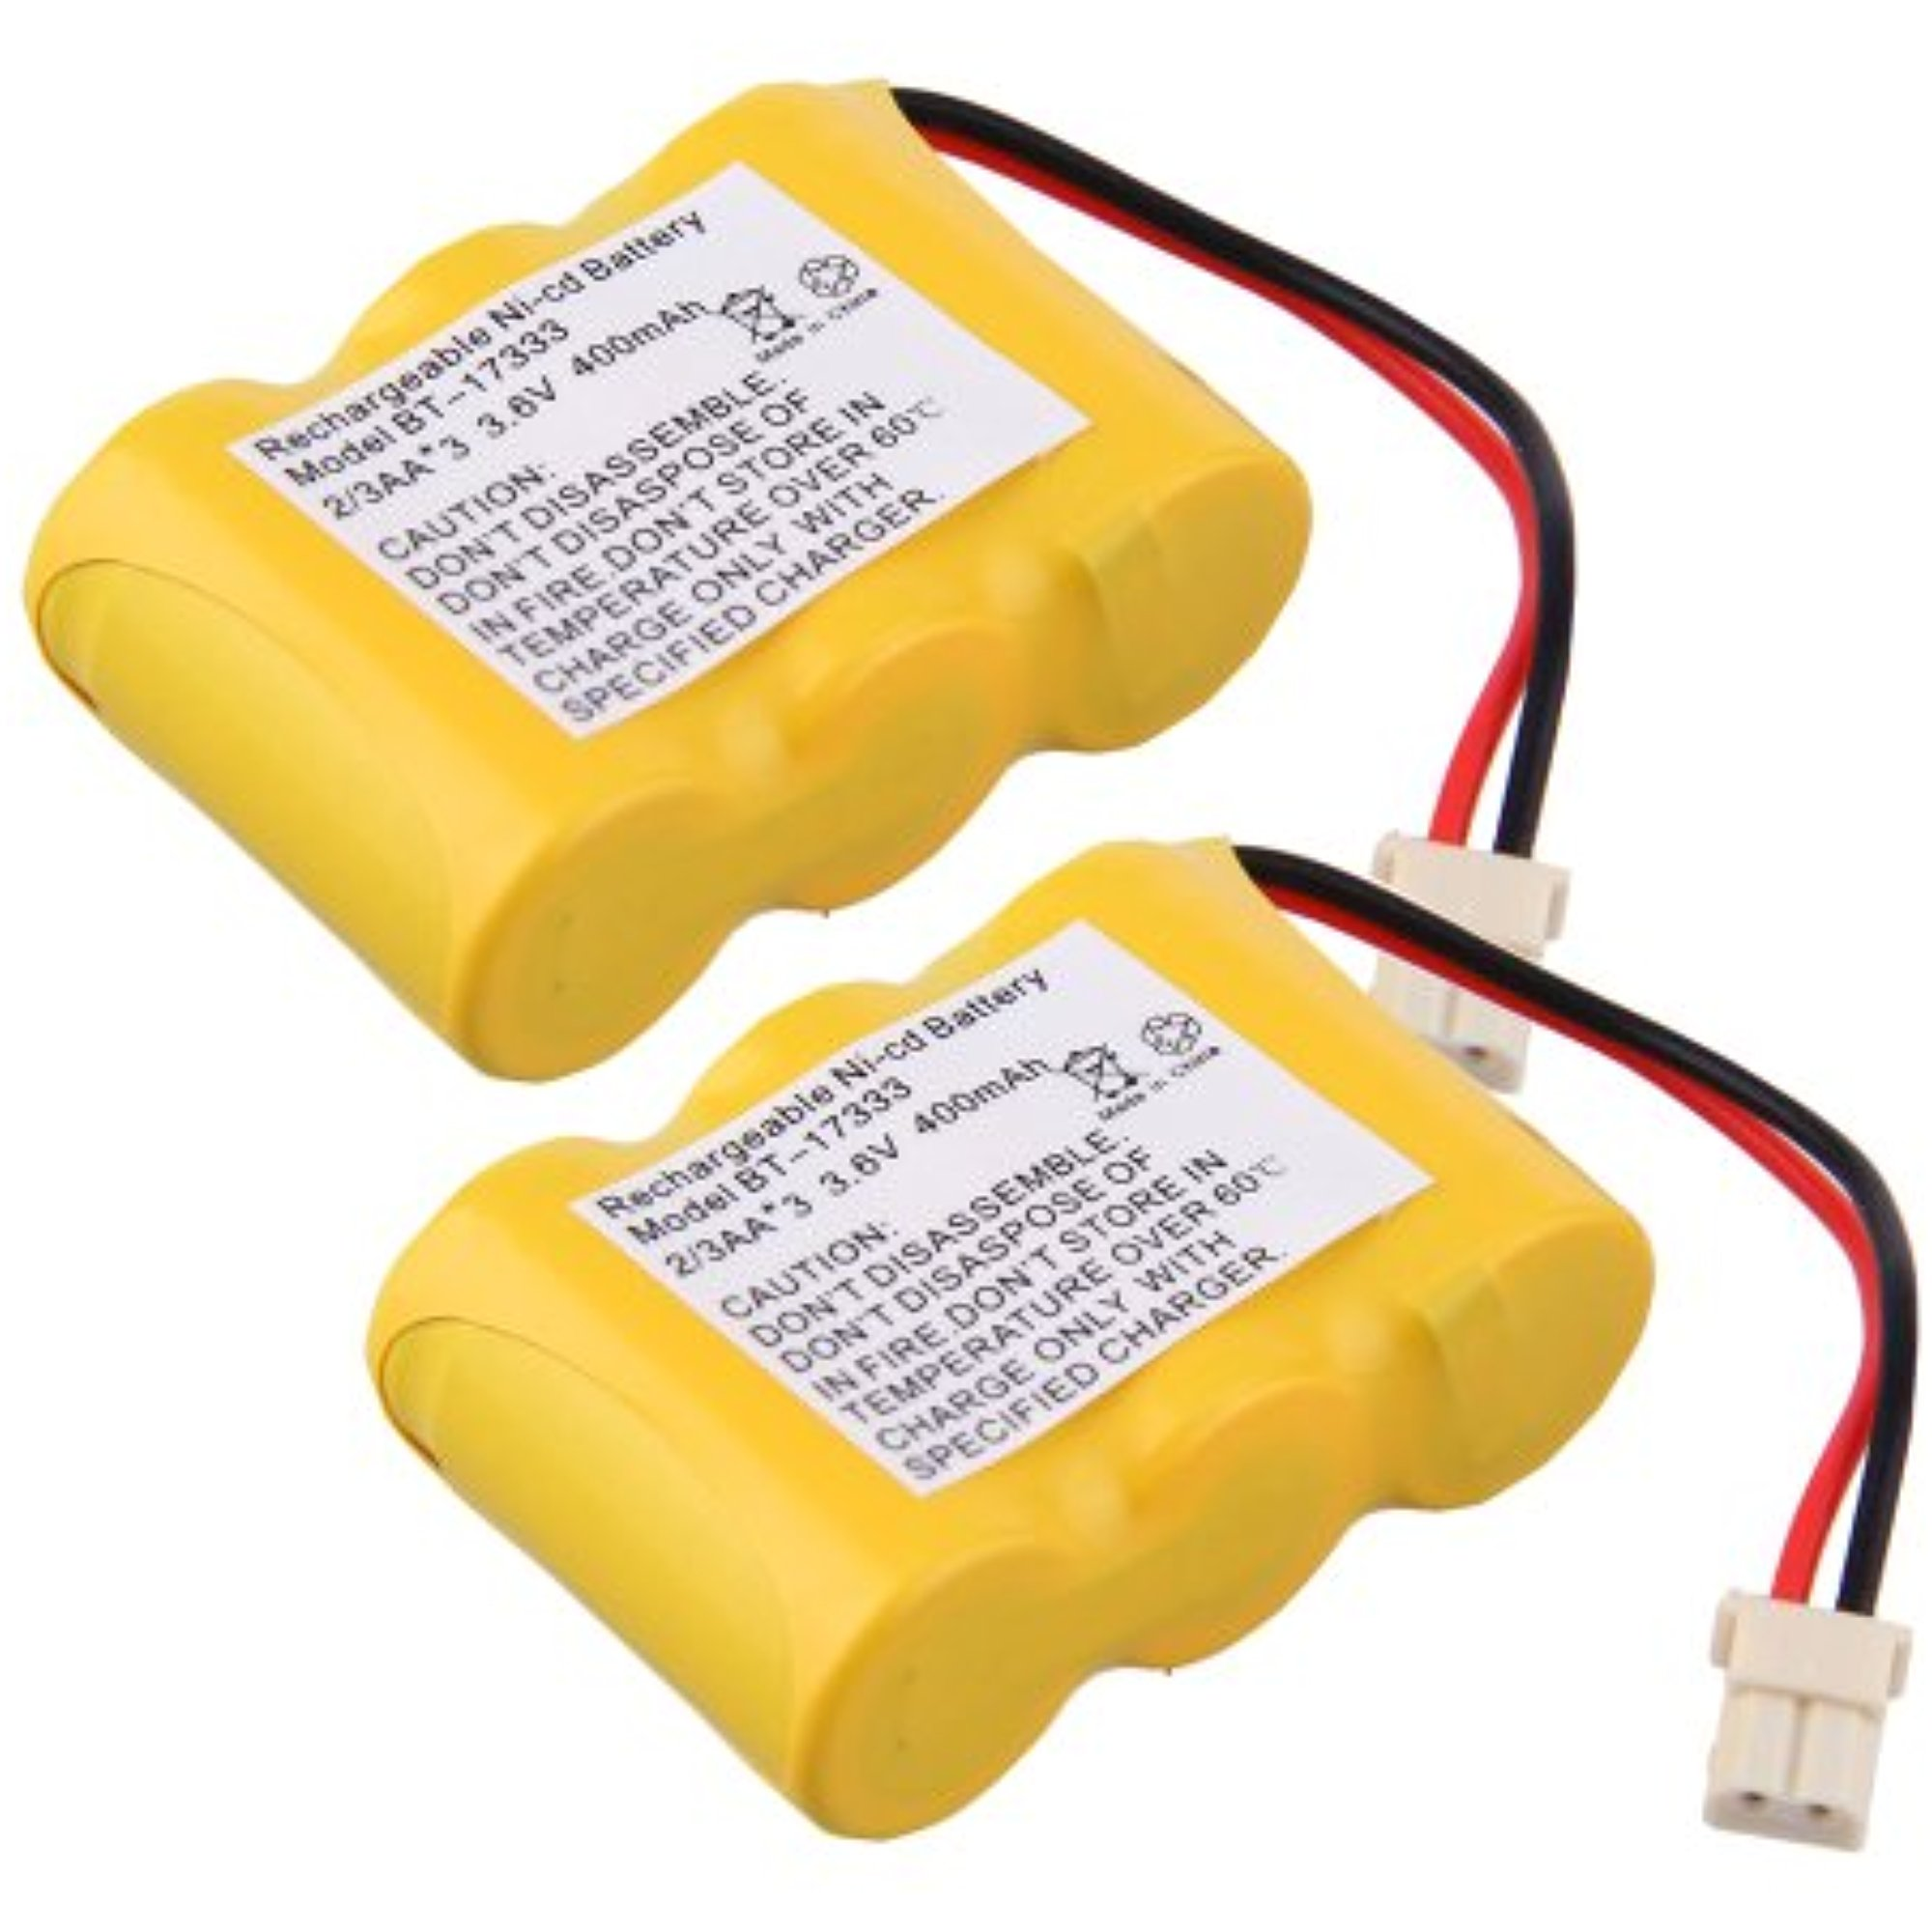 Generic 2 Pack 400mAh Cordless Phone Battery for Vtech BT-17333 CS2111, CS211